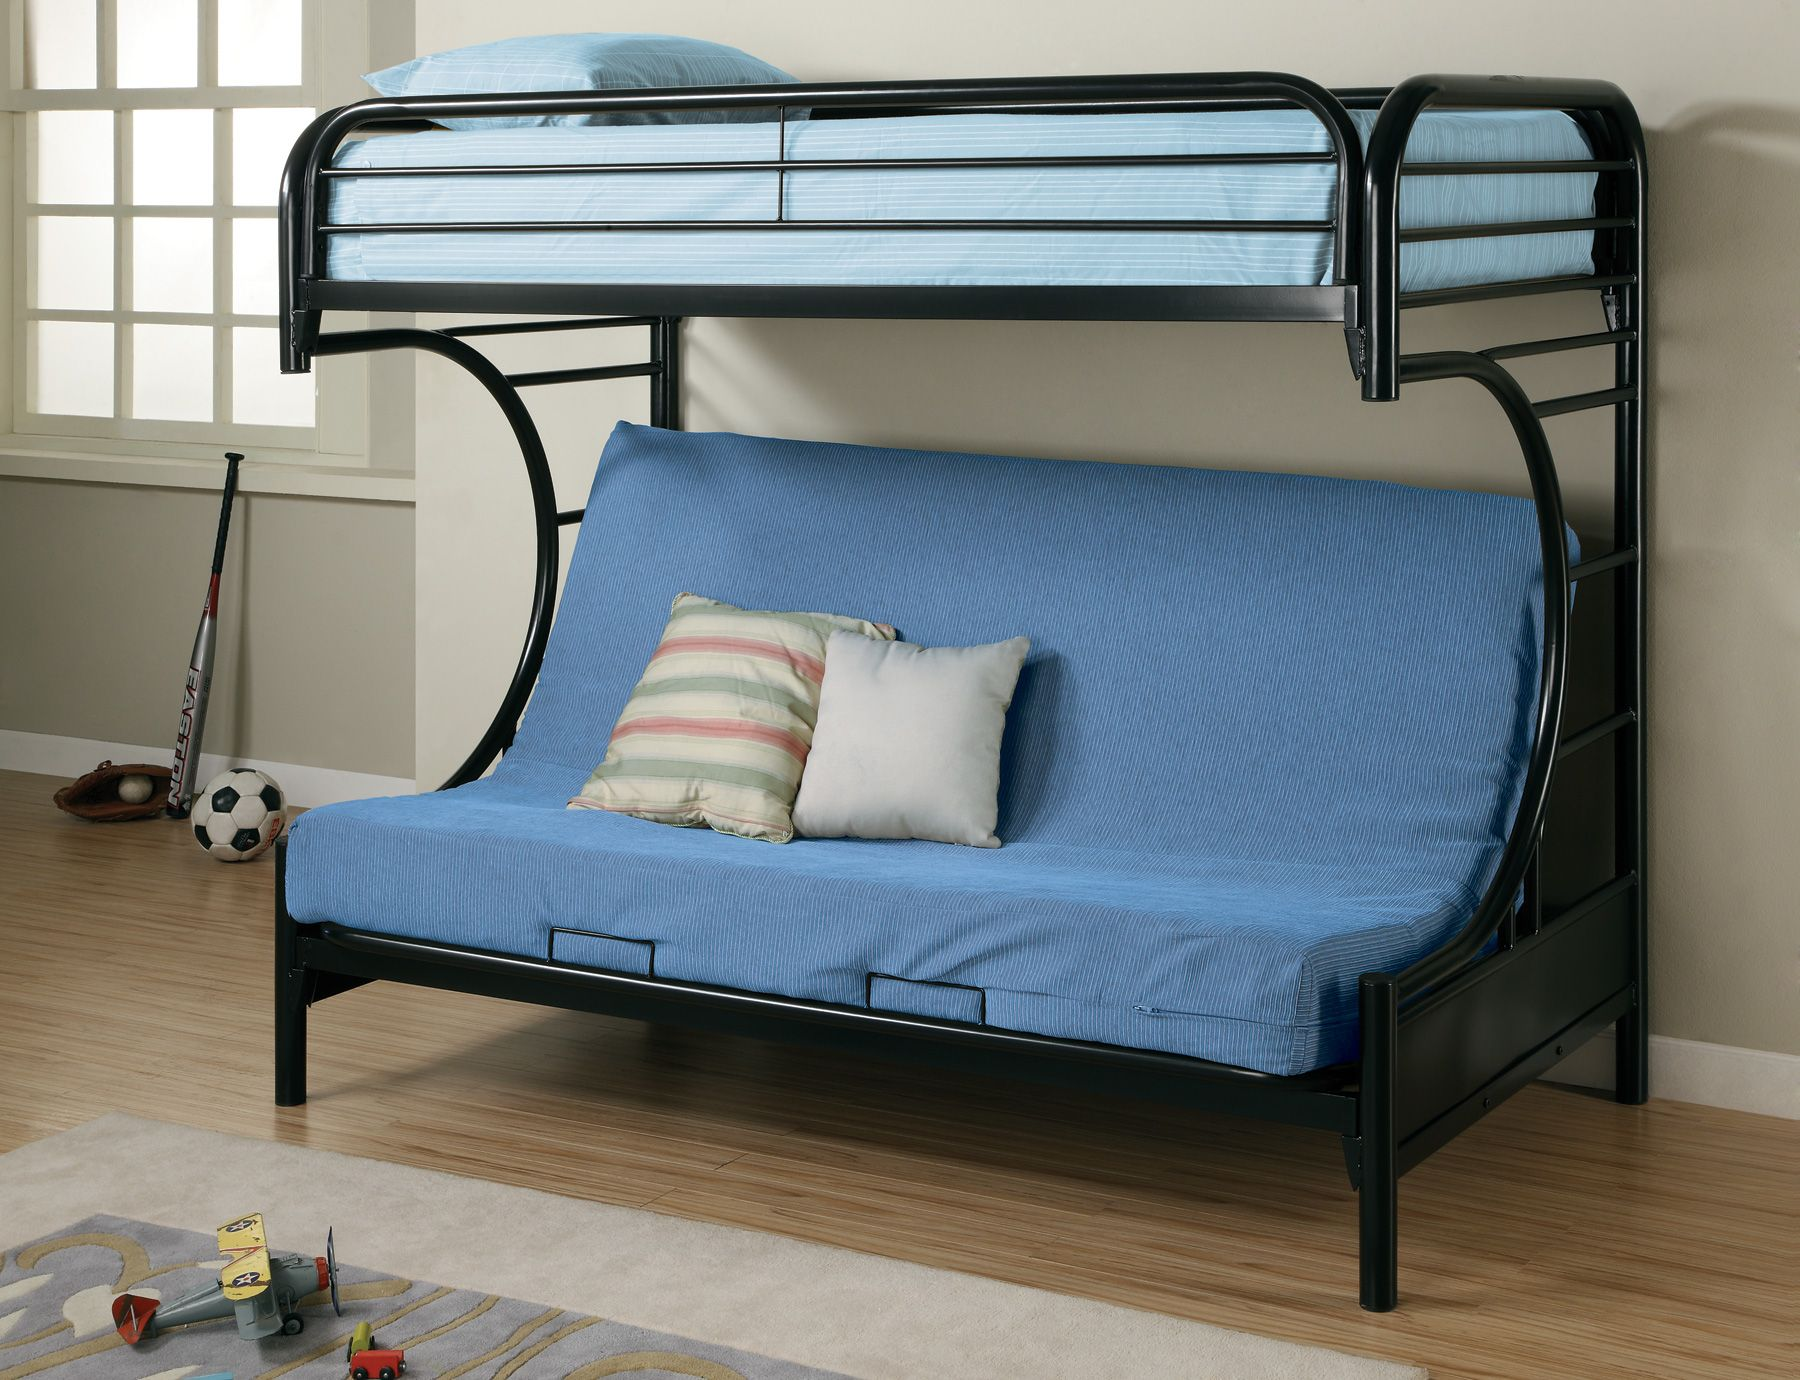 this metal twin over full futon bunk bed with ladder built in is a twin full bunk bed at night and a futon couch by day  there is a built in ladder as well      bed entrancing style twin over full frame twin bed dimensions      rh   pinterest